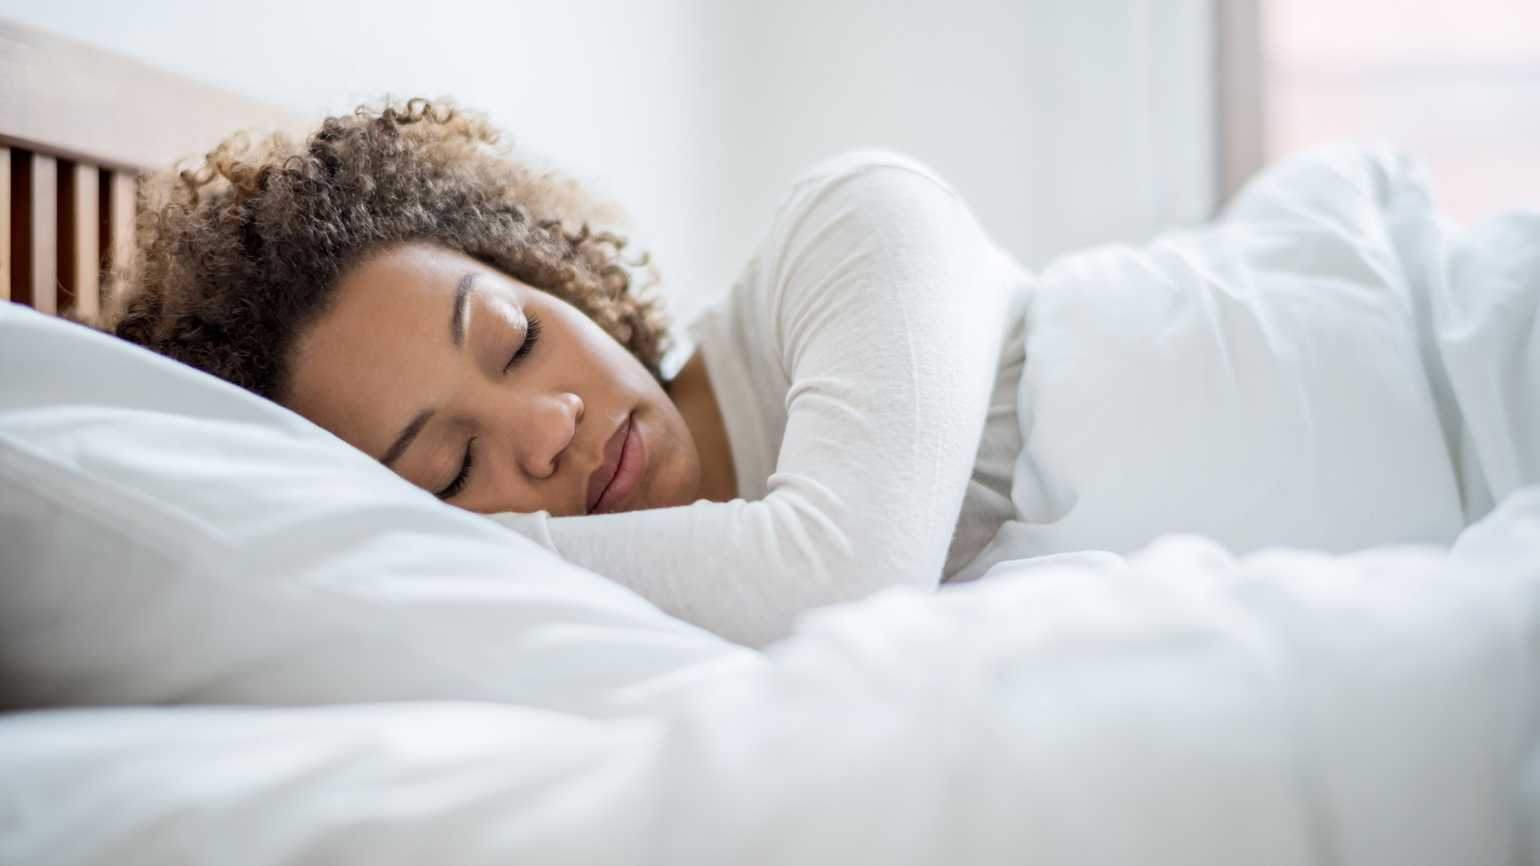 An African-American woman catching up on beauty sleep.